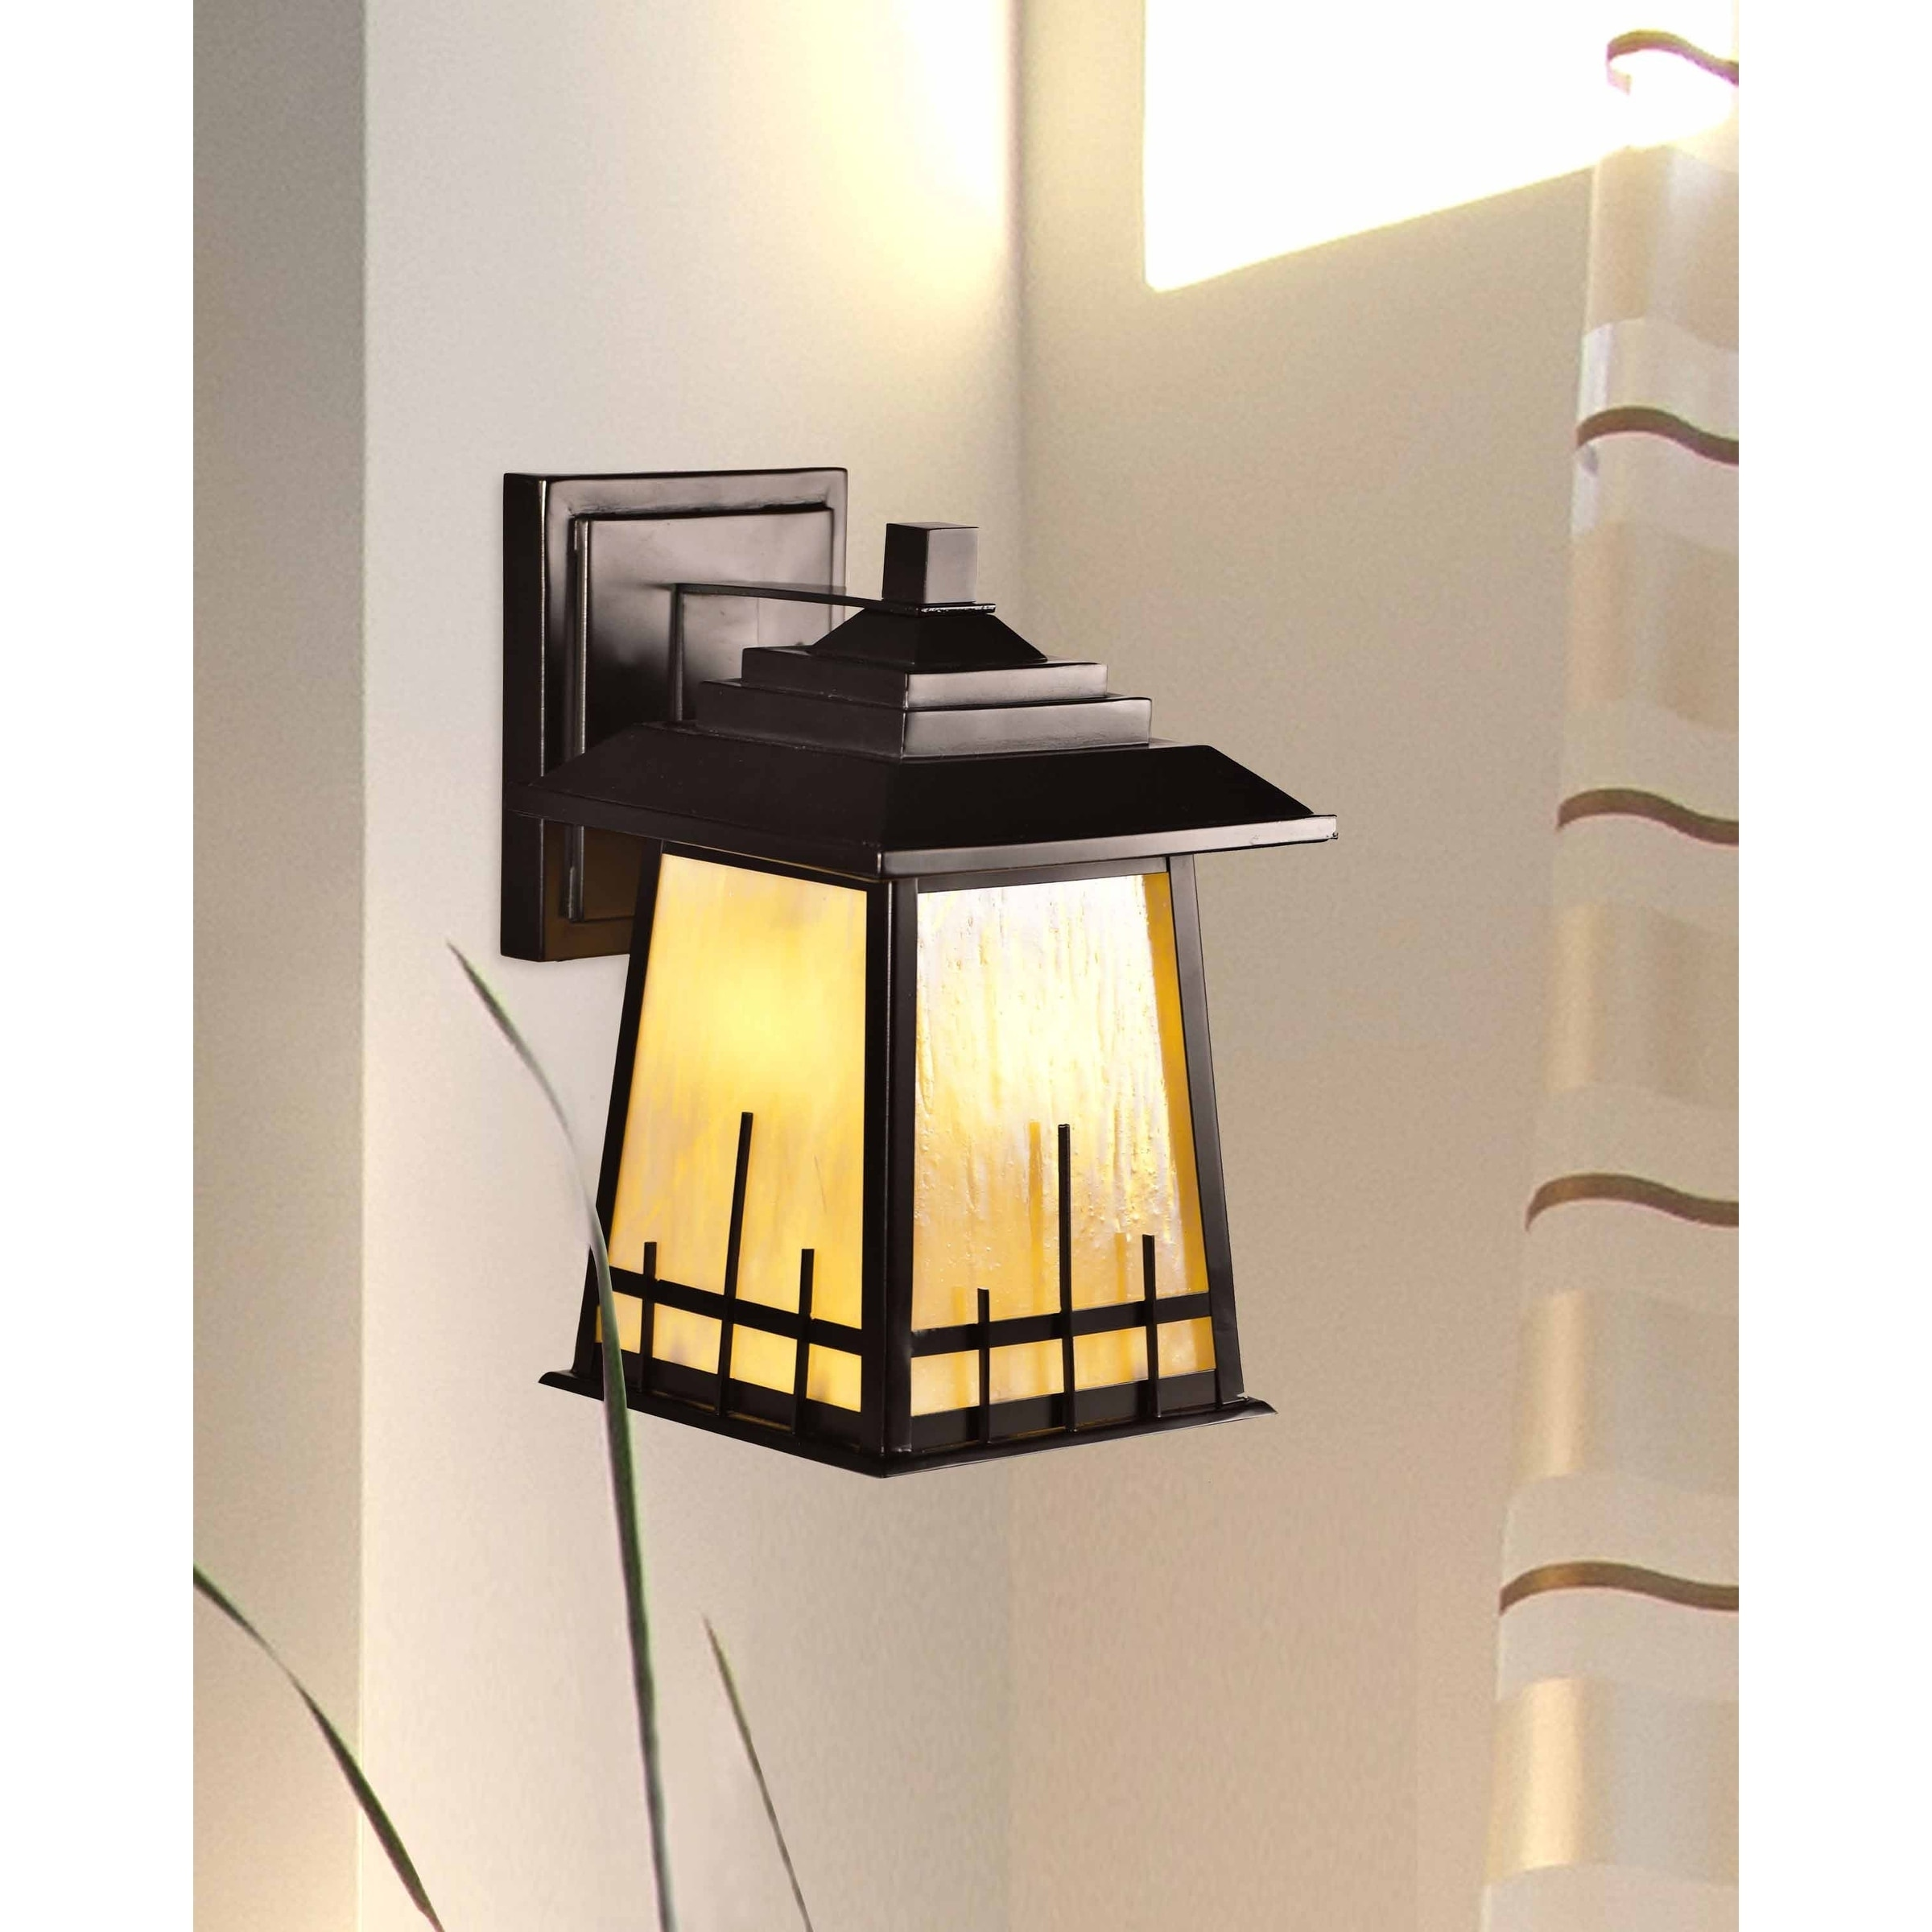 Buy Dale Tiffany Wall Lights Online at Overstock.com | Our Best ...